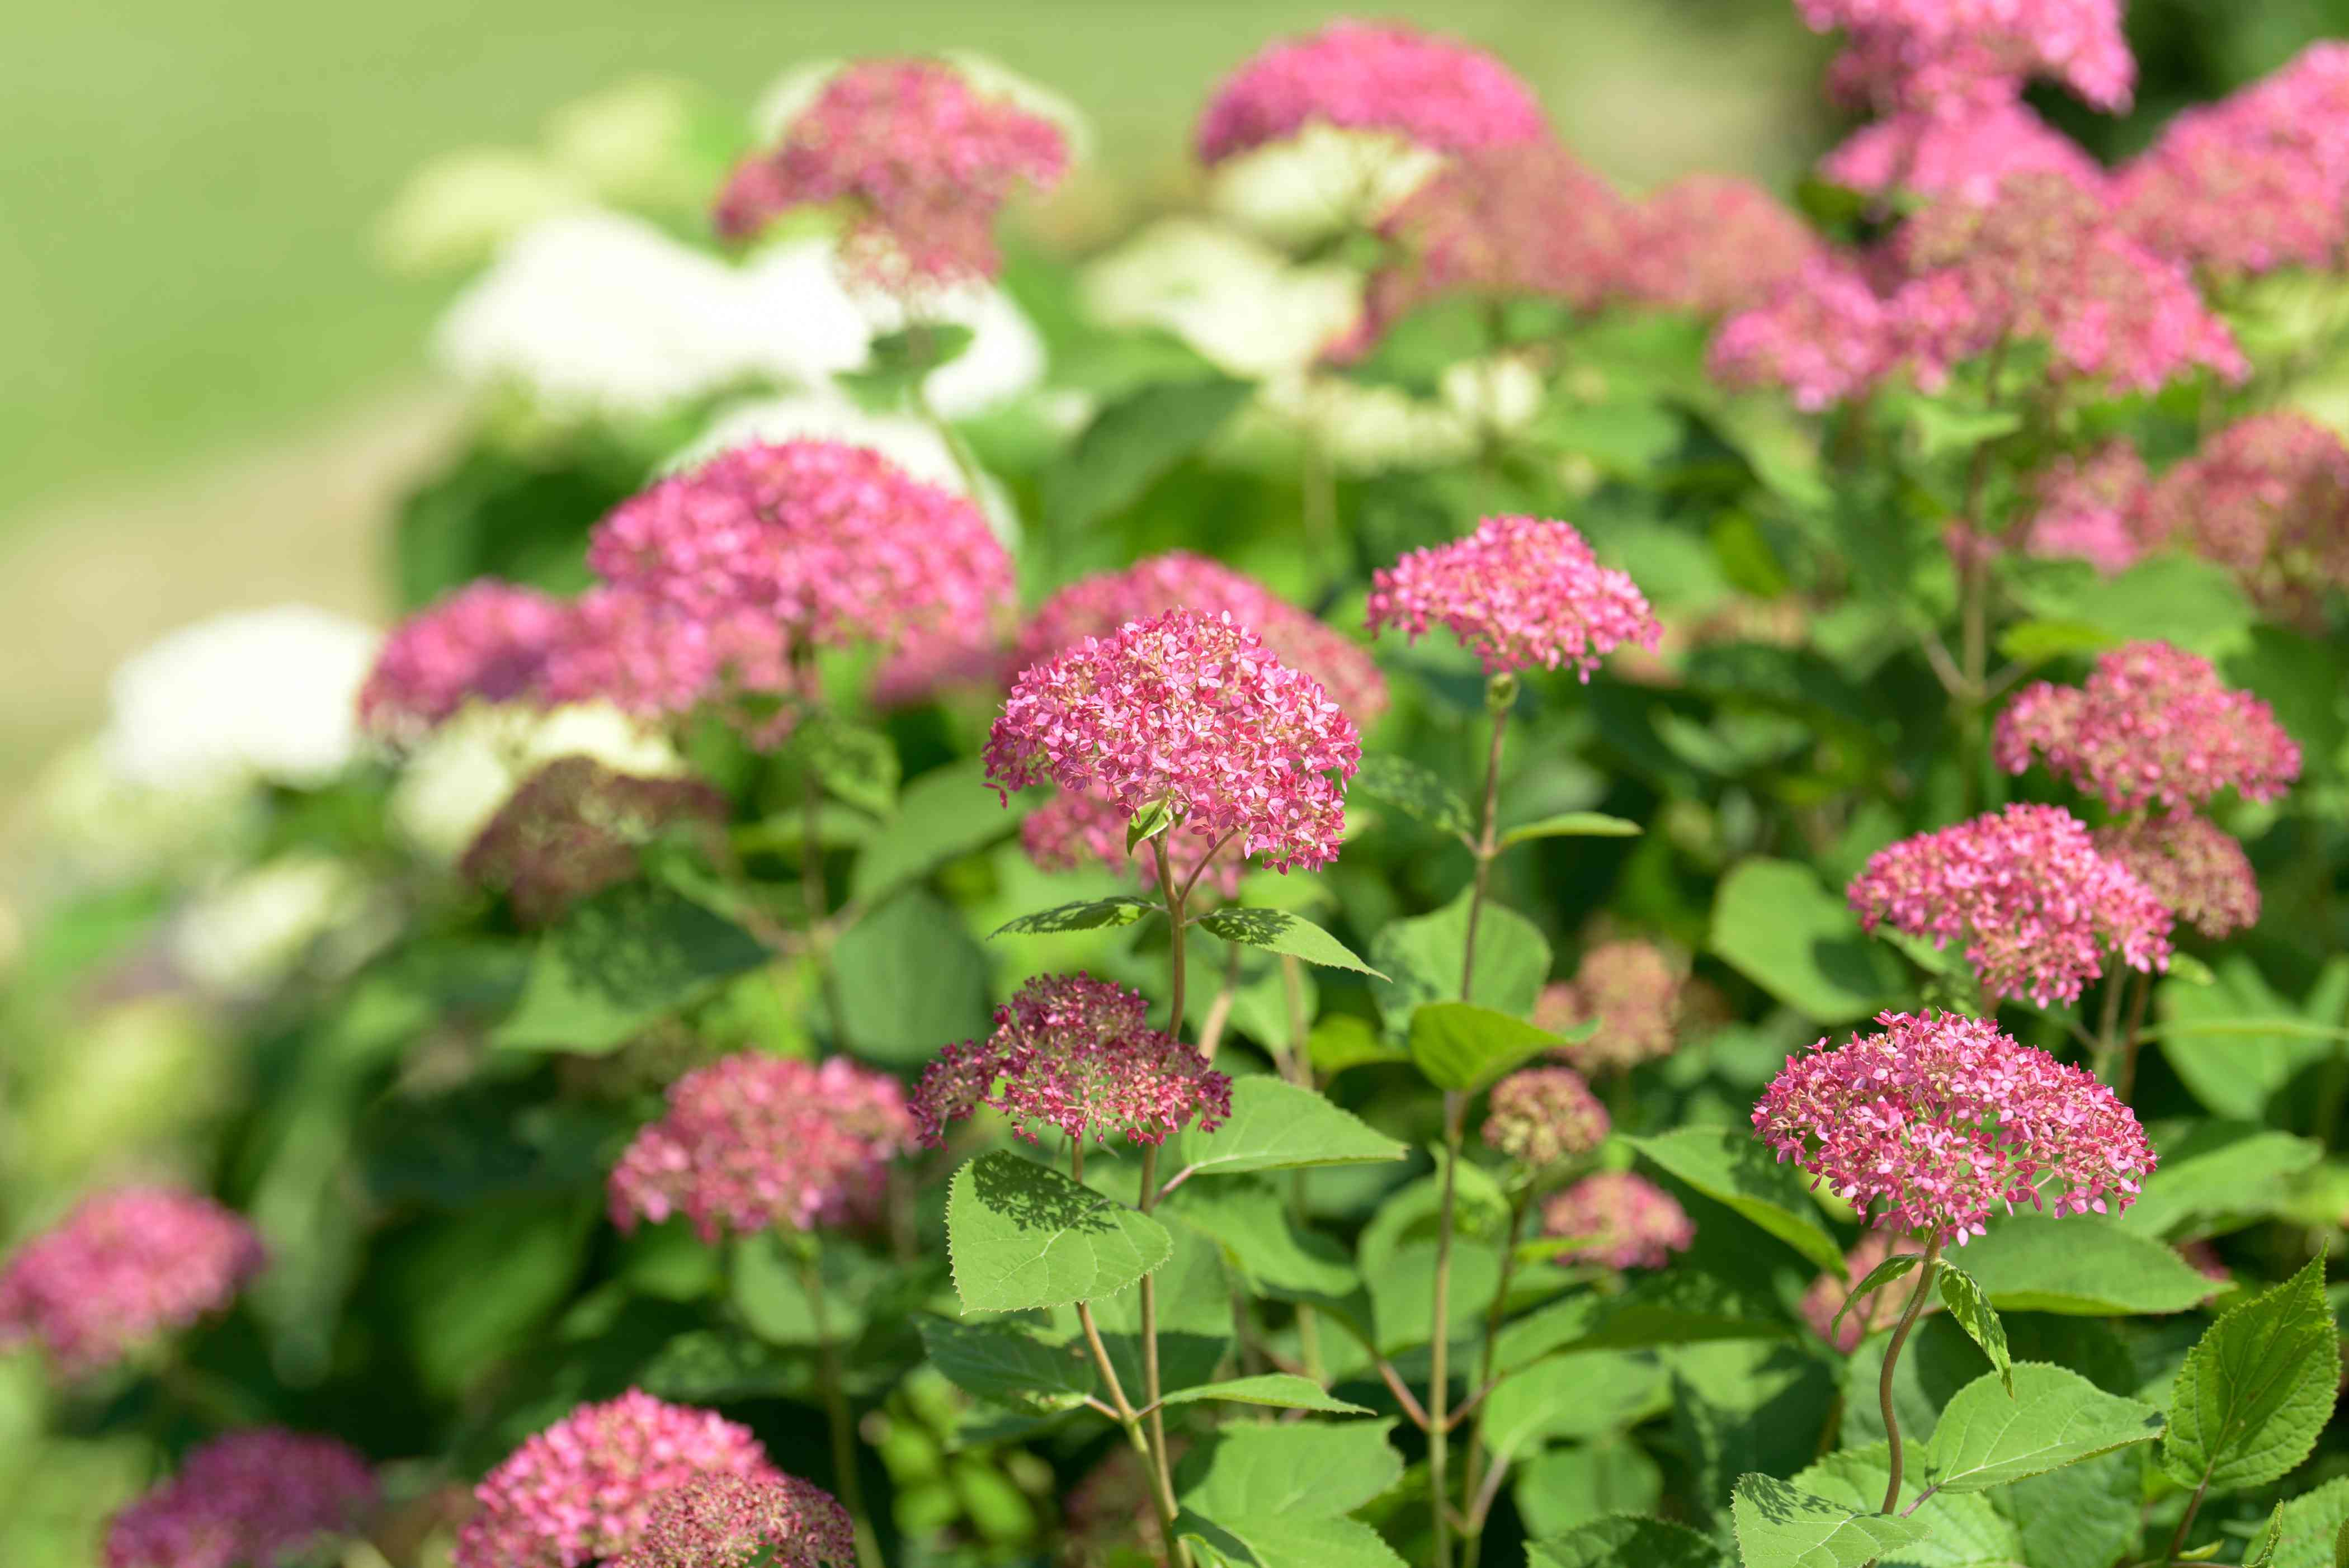 Invincibelle spirit hydrangea shrub with small pink flower heads clustered on thin stems in sunlight